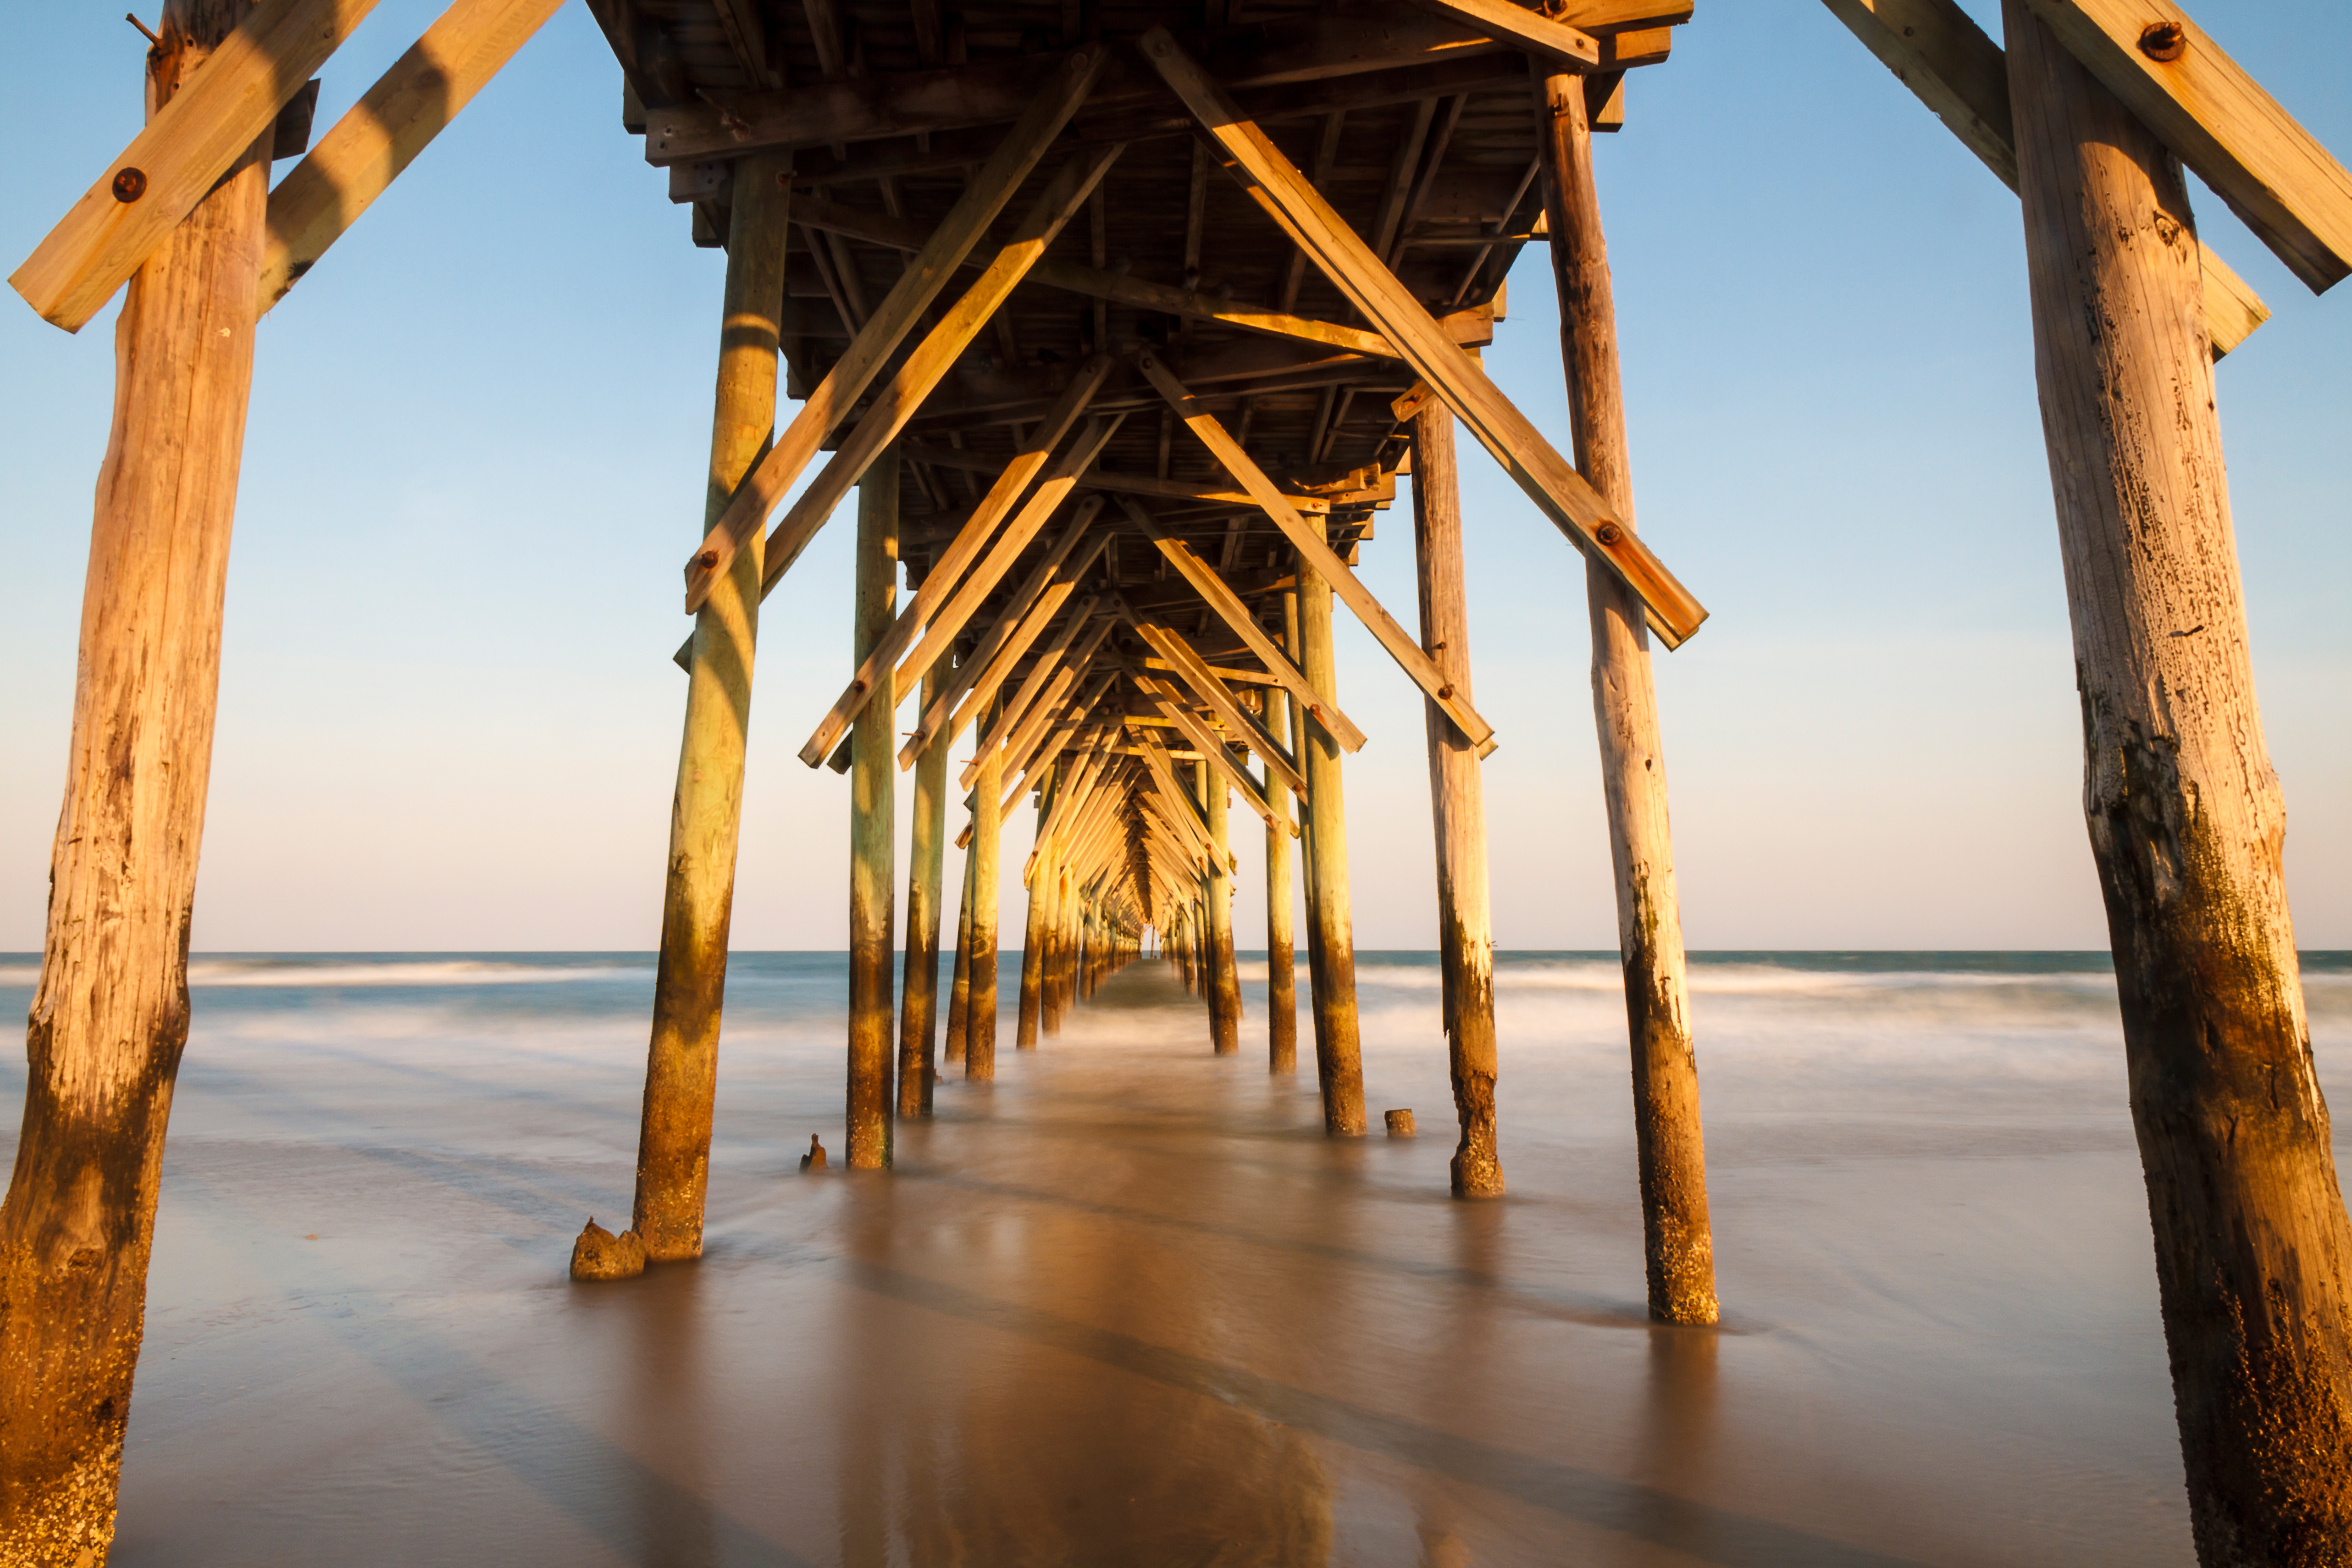 Pier, North Topsail Beach – Cameron Booth